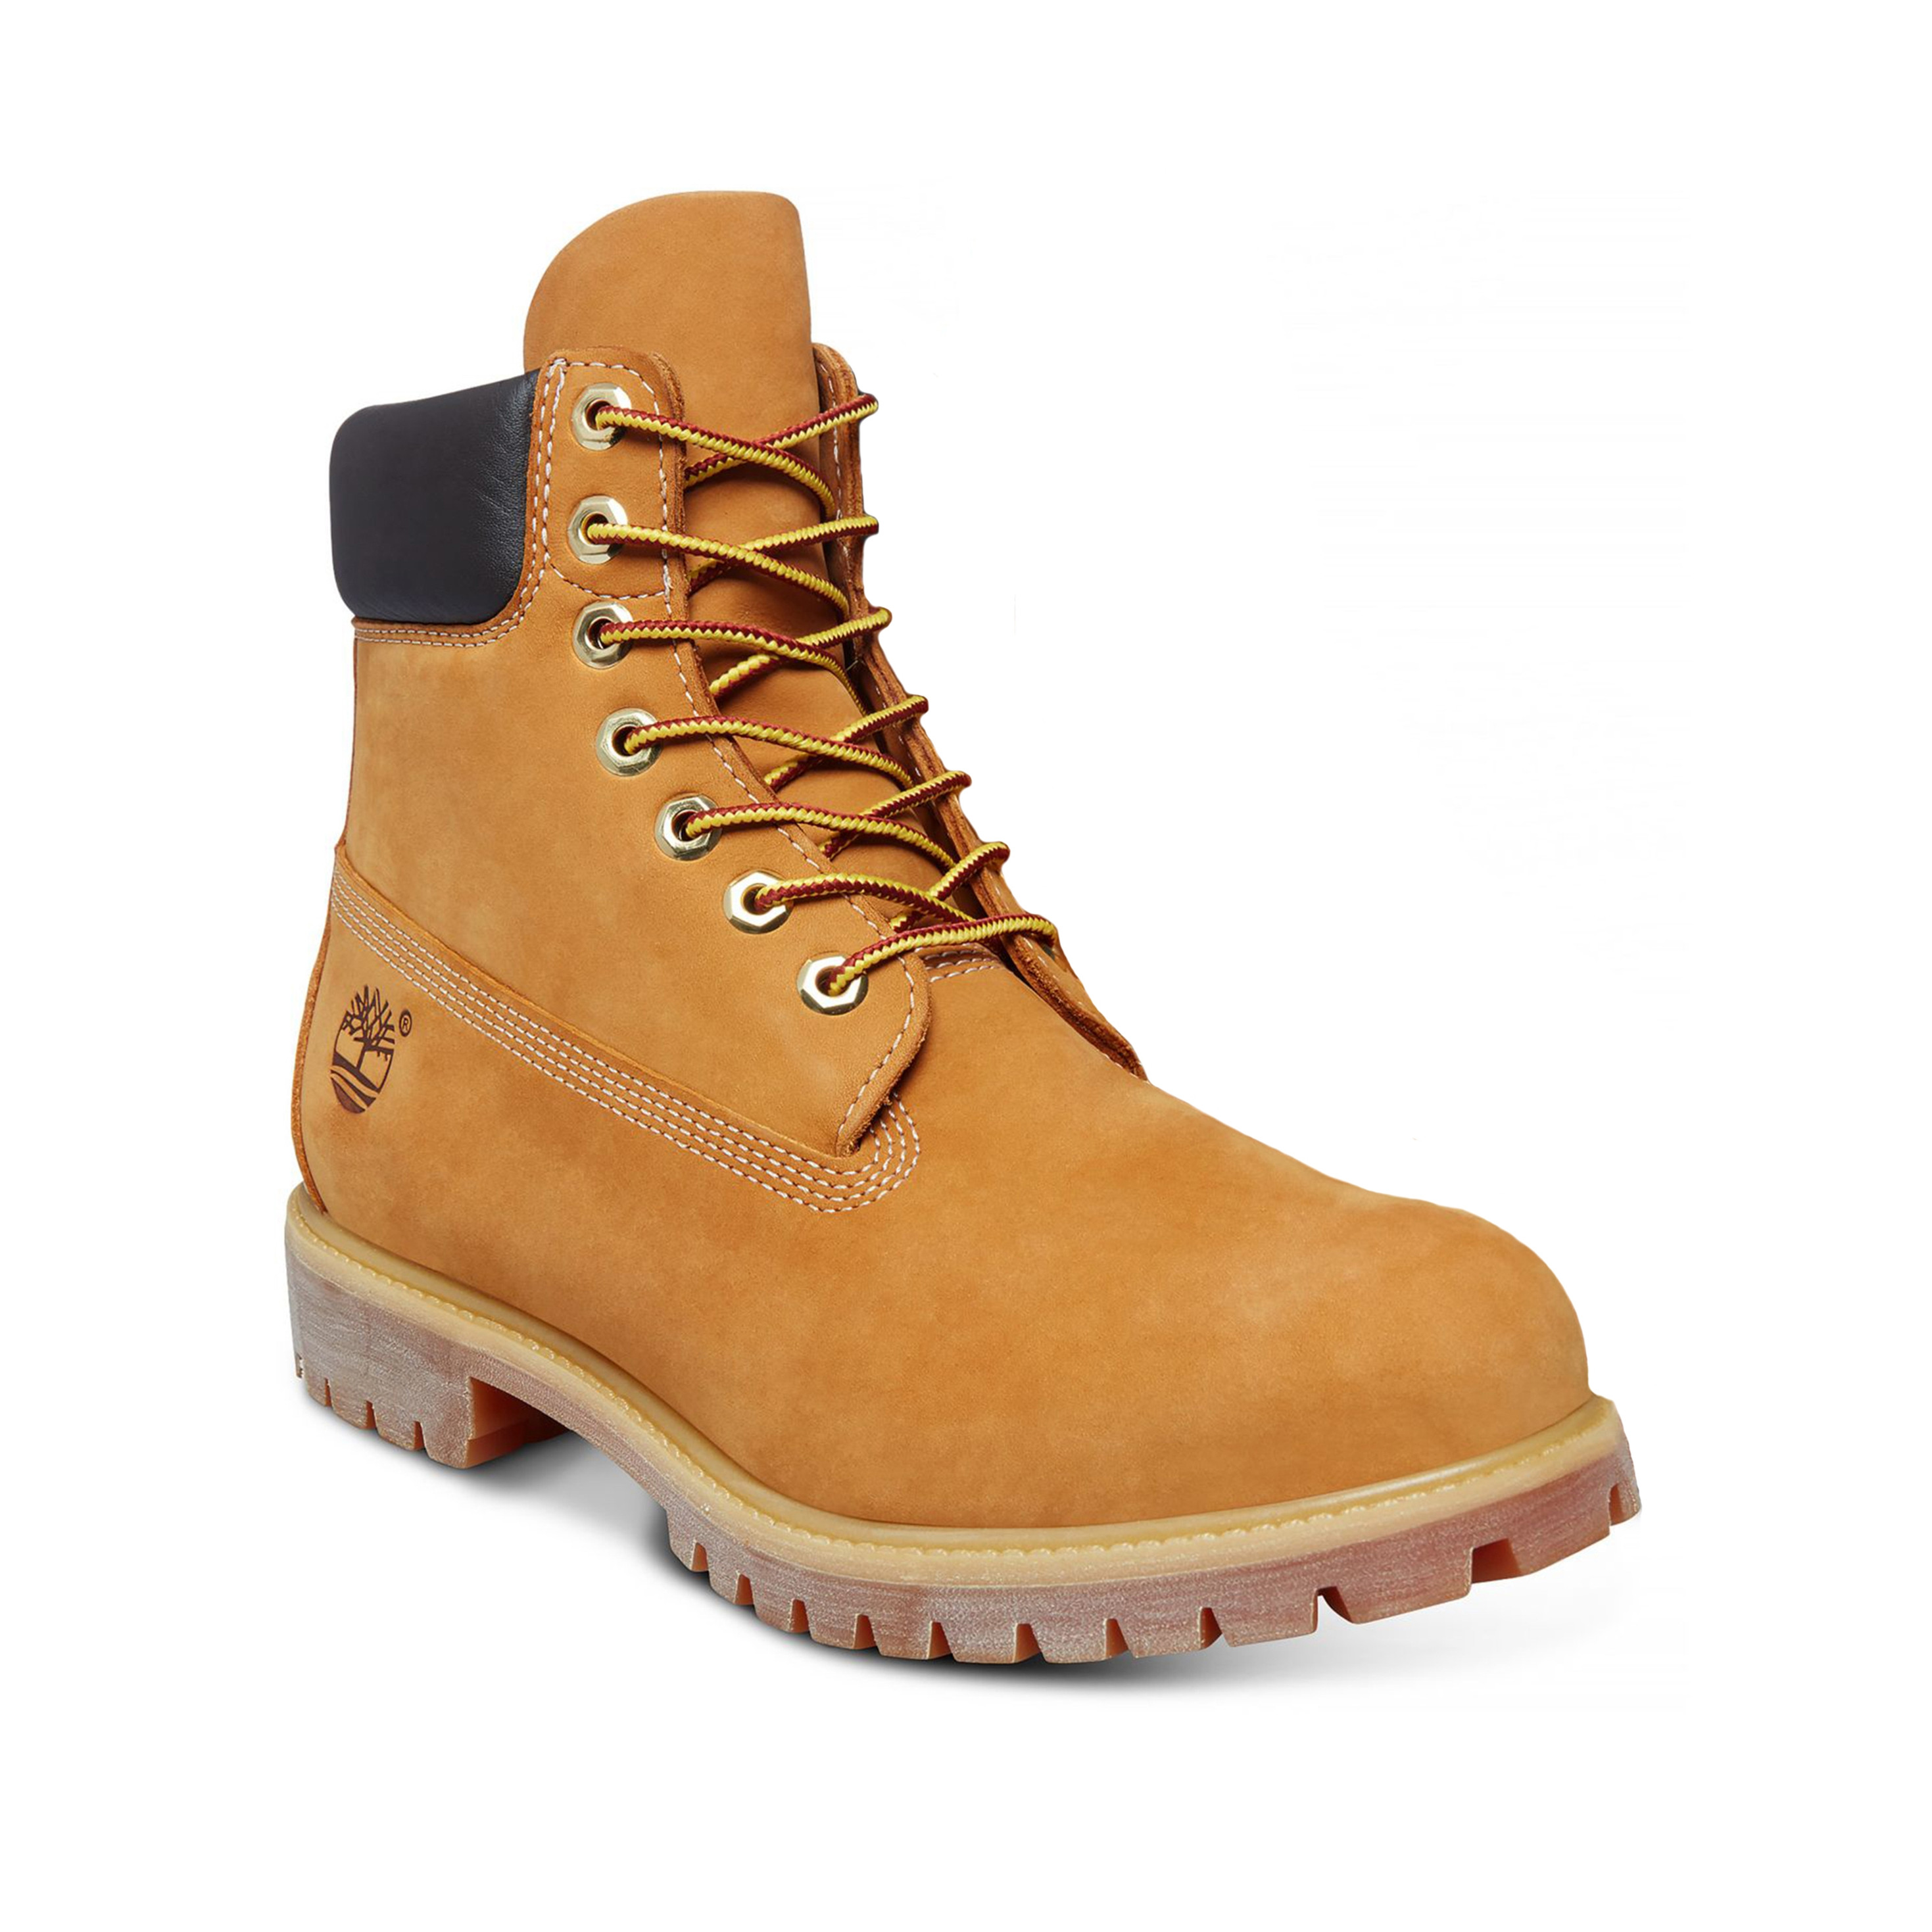 Elevado templar riesgo  Timberland Mens Premium 6 Inch Leather High Boots Boots Wheat Yellow | Jean  Scene